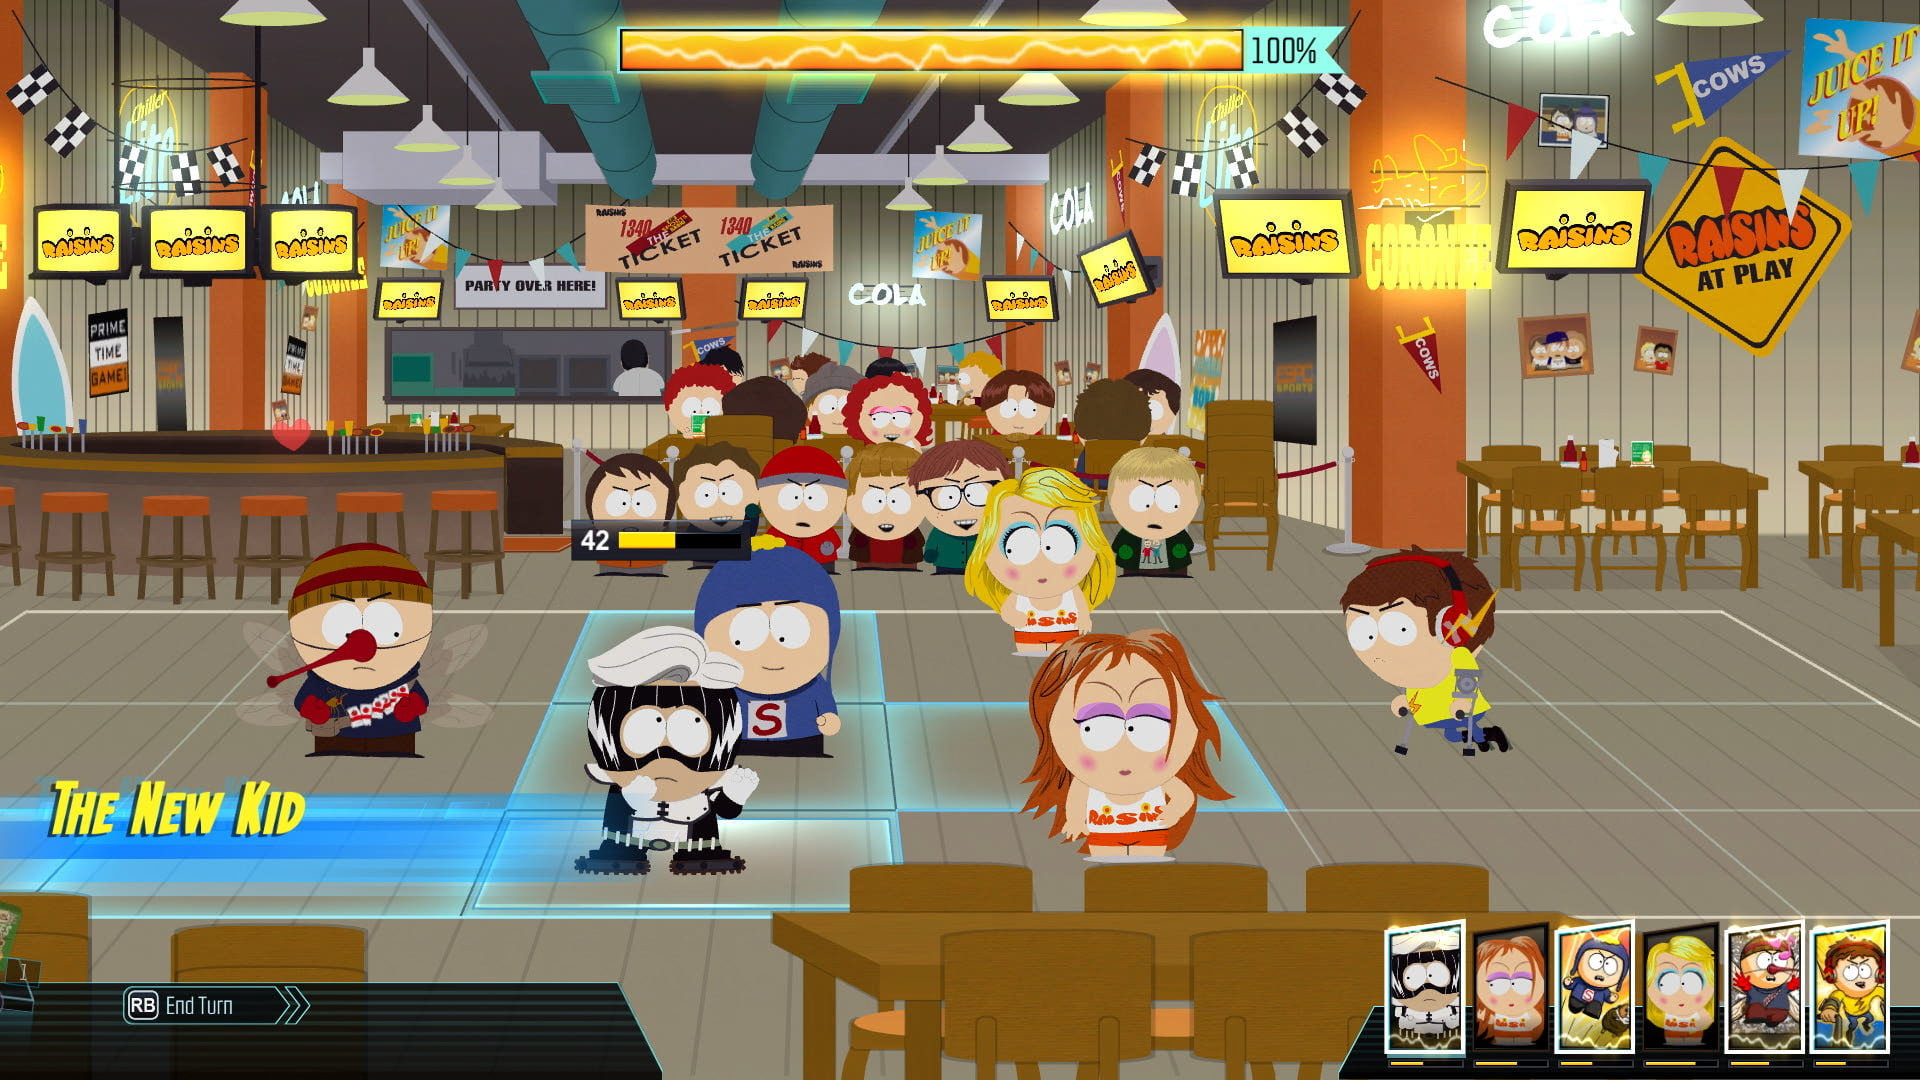 South Park: The Fractured but Whole for MacBook gameplay